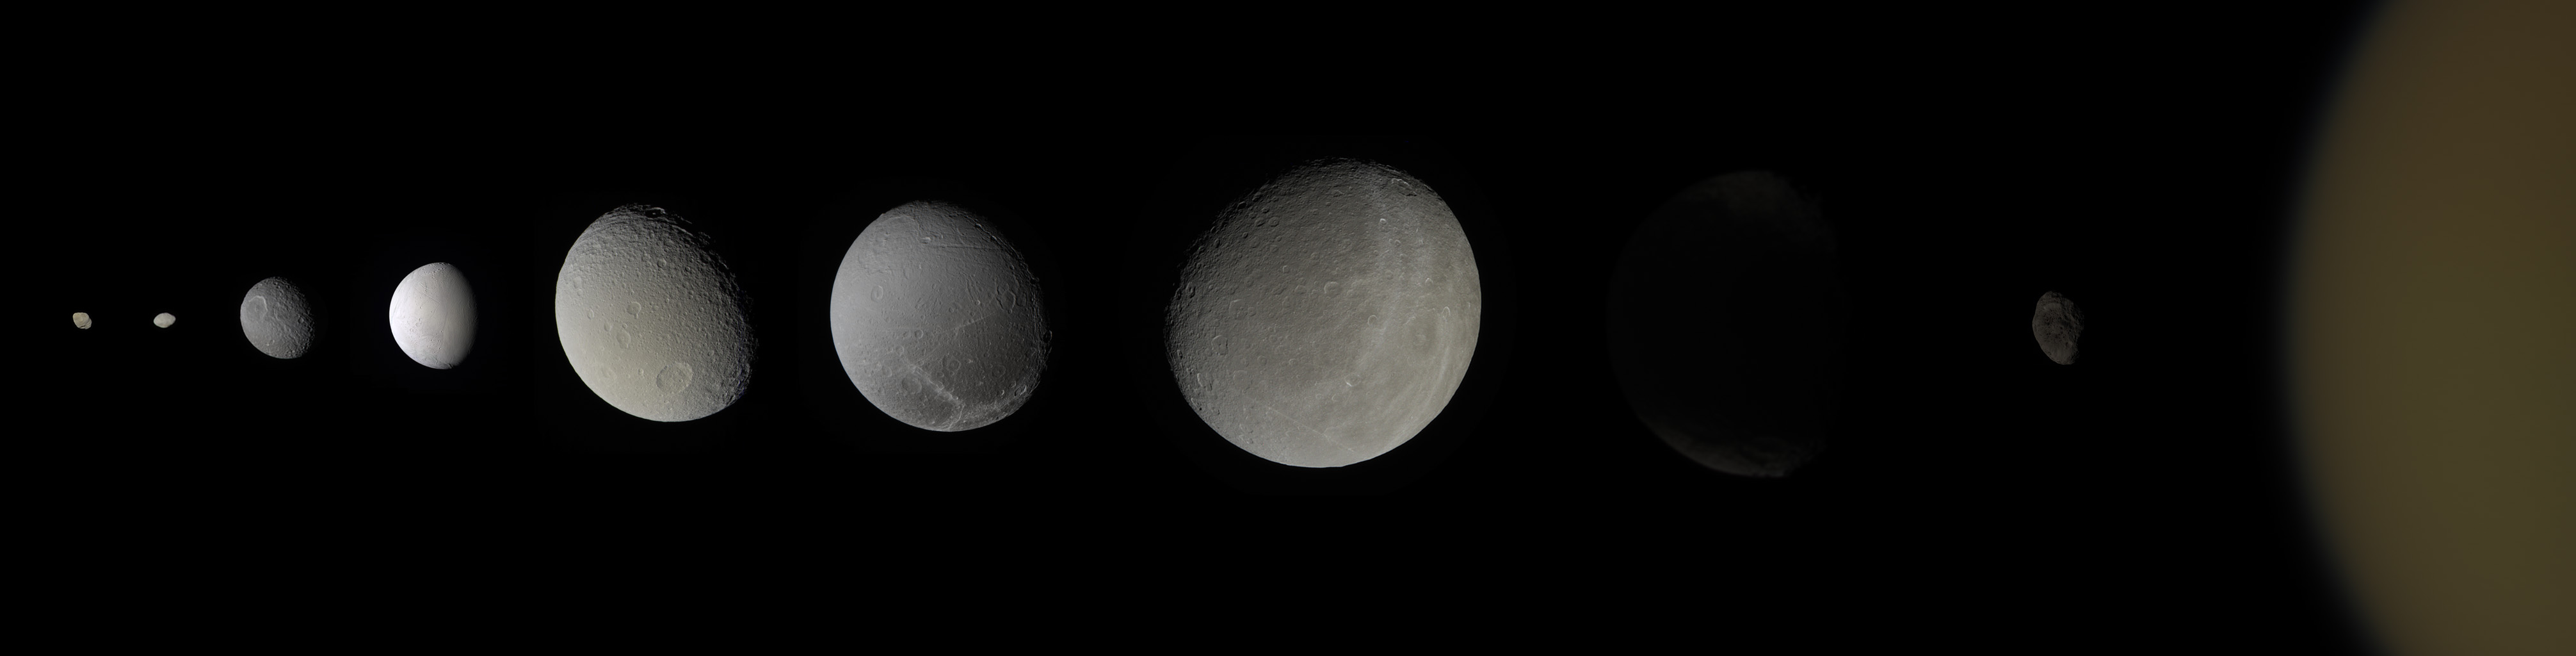 The colors of Saturn's moons | The Planetary Society